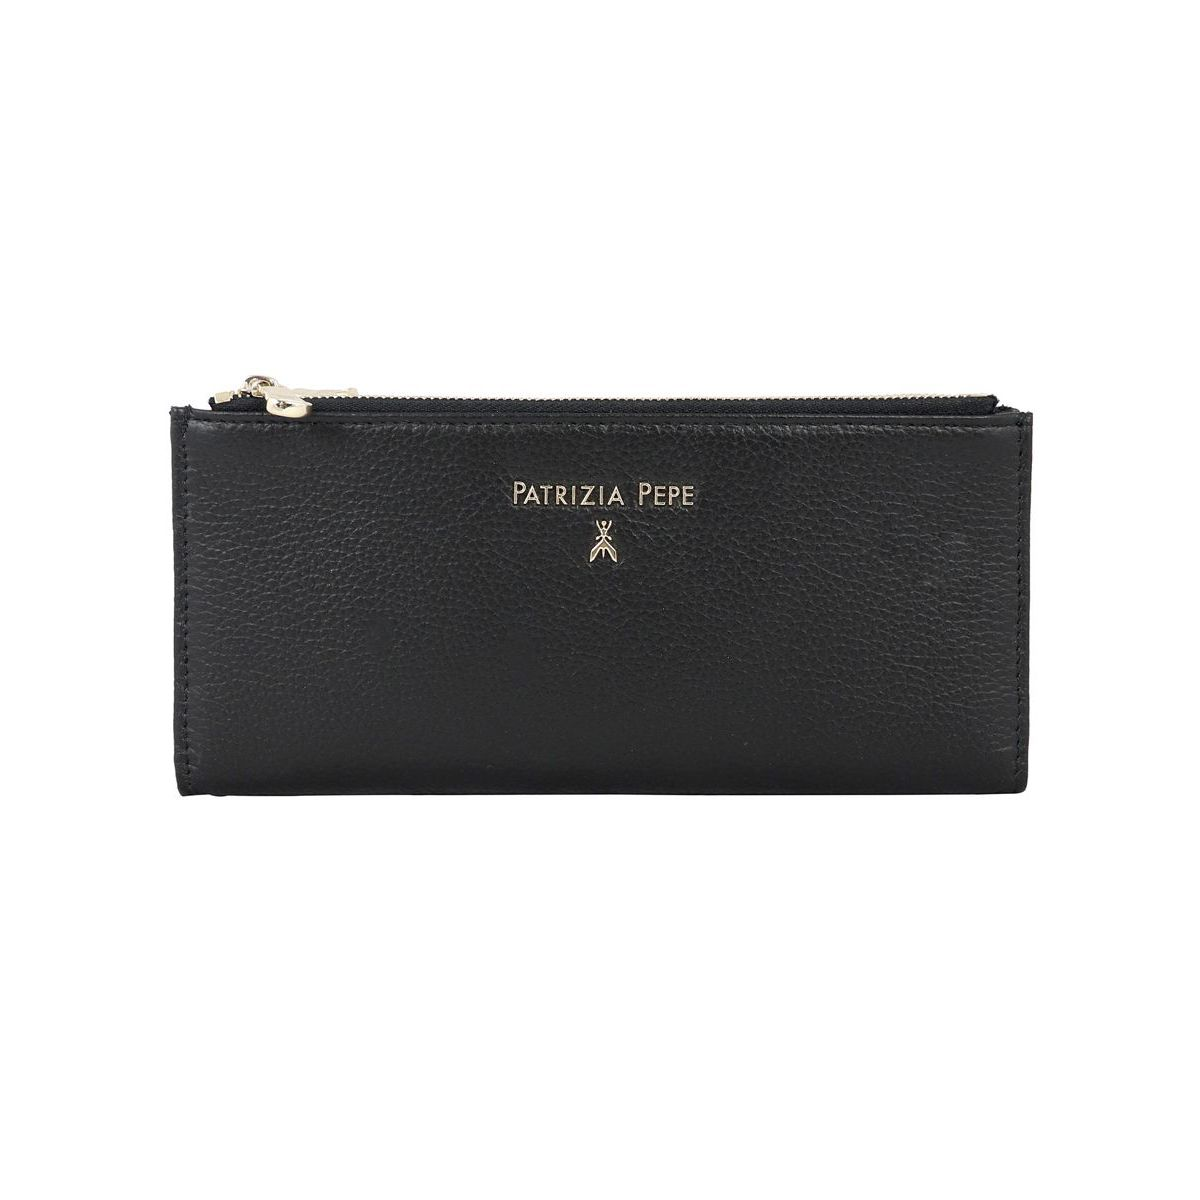 Textured leather wallet with double zip and logo Black Patrizia Pepe